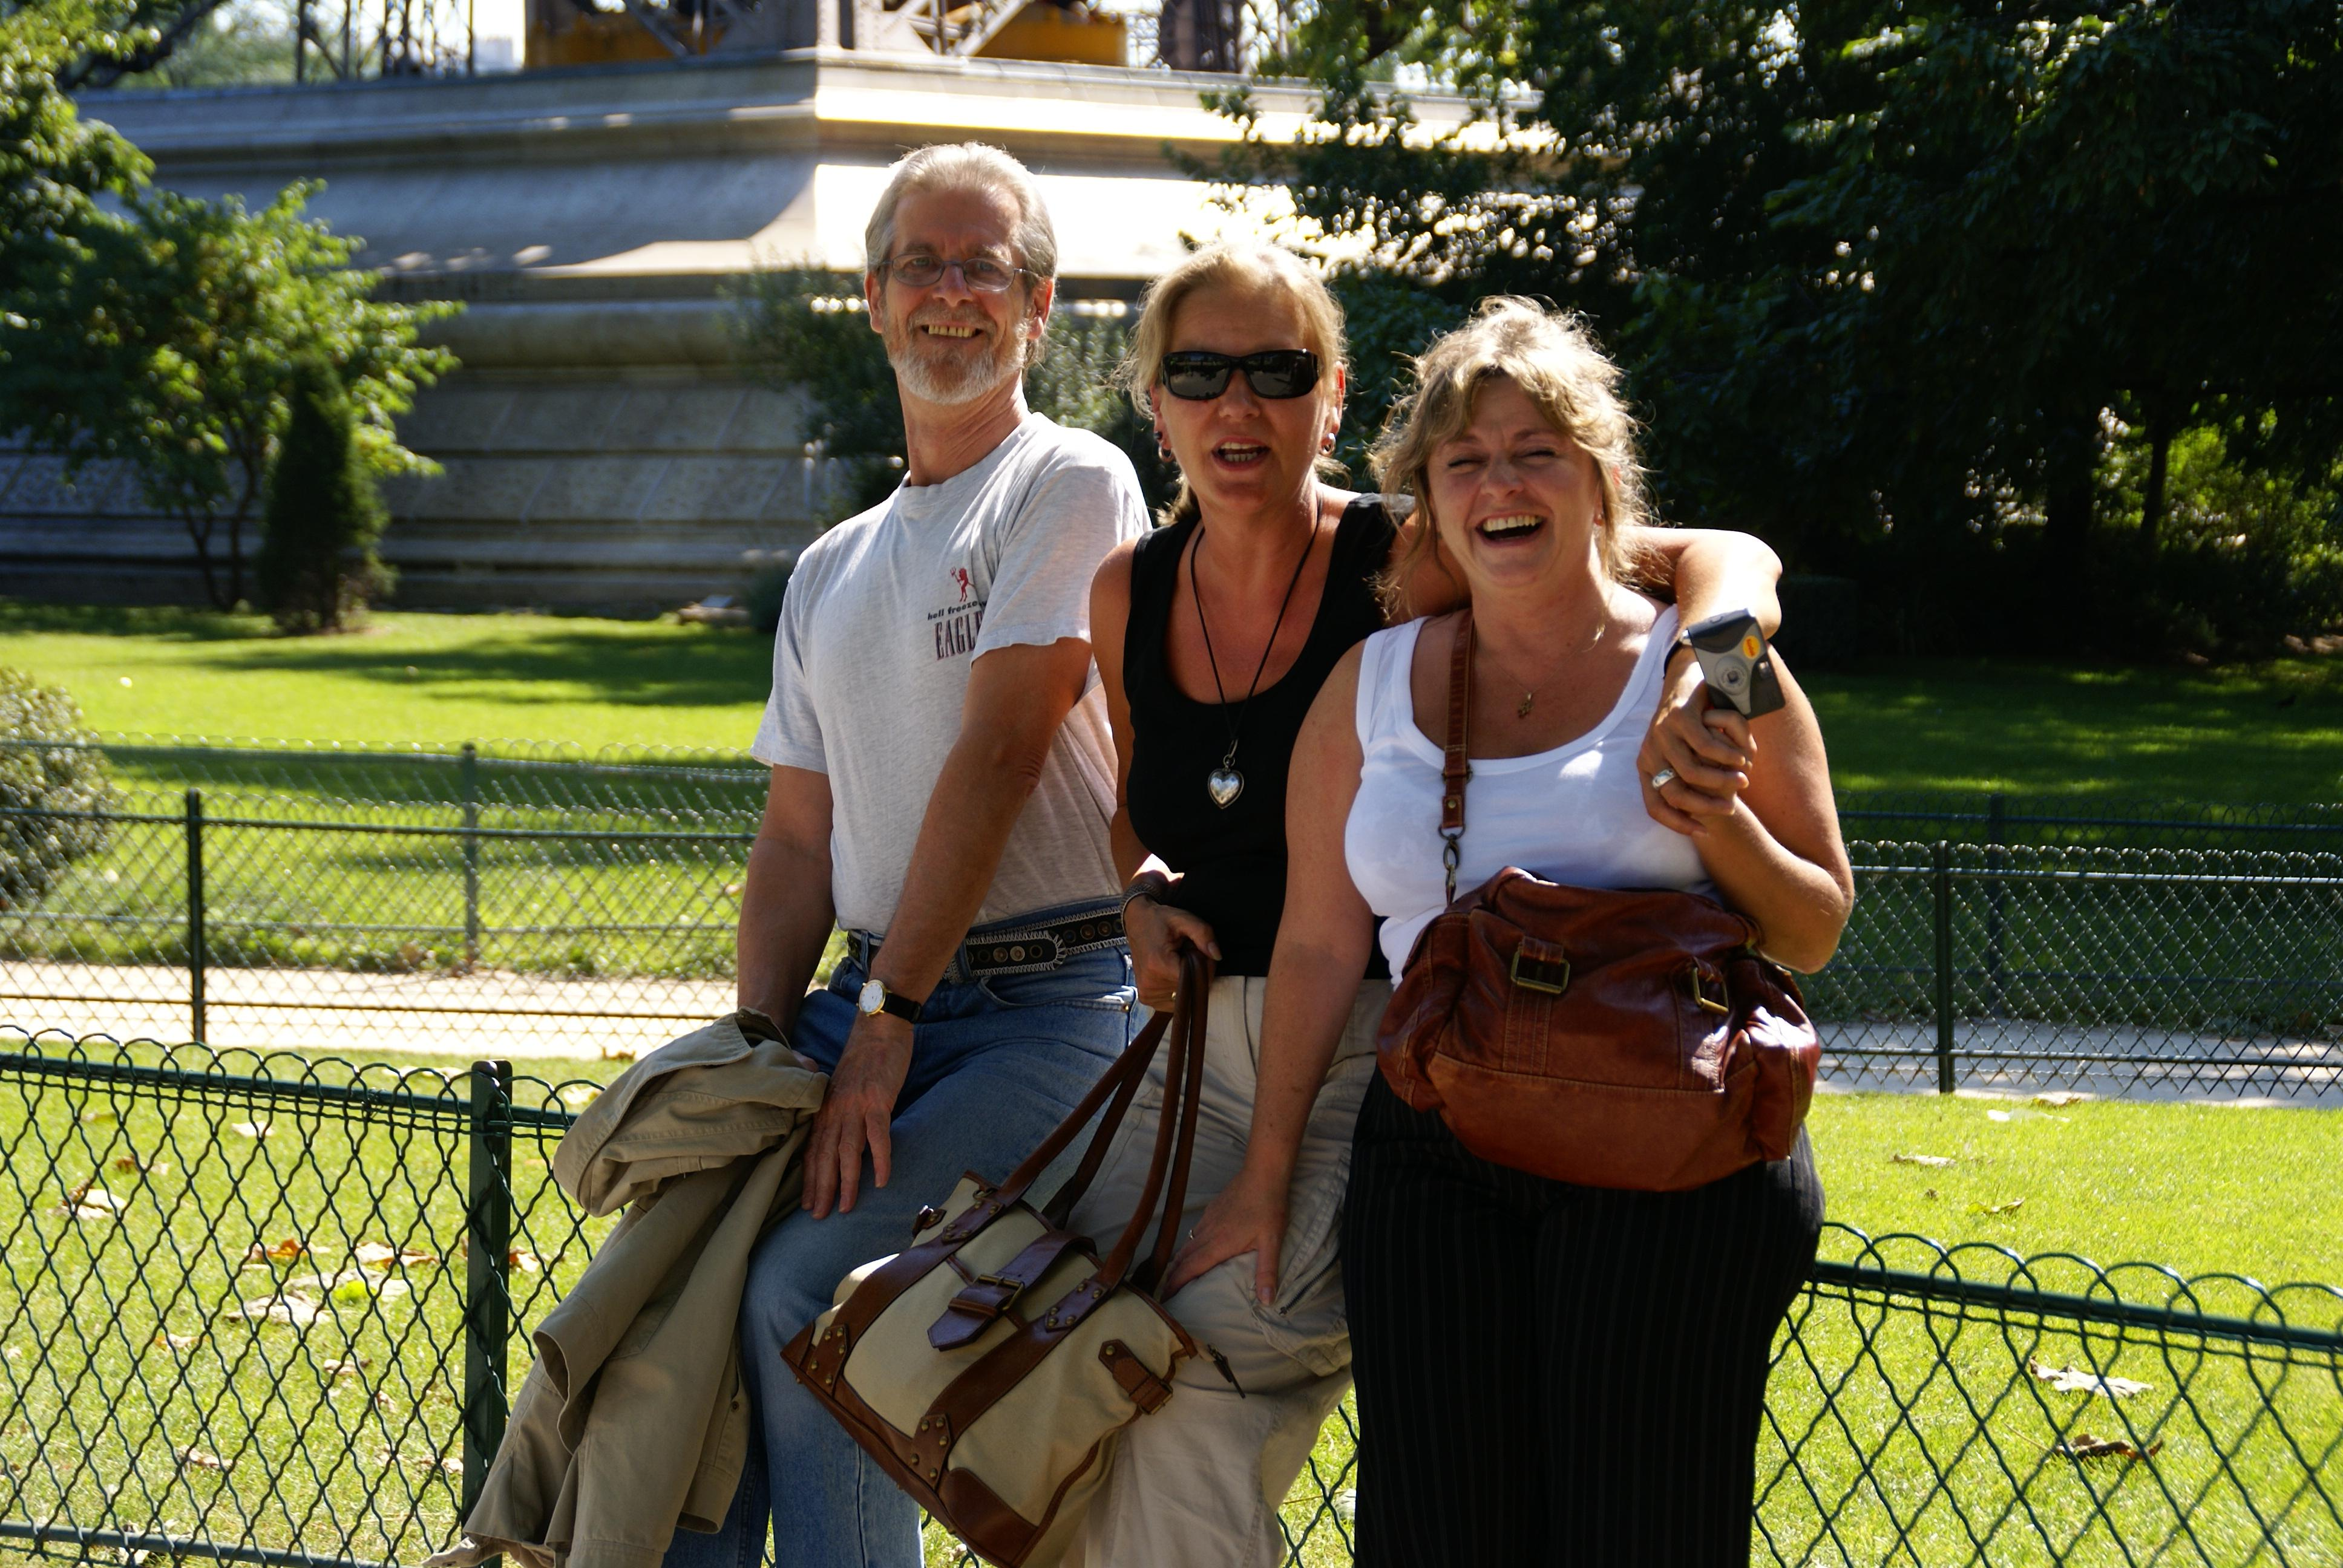 update clinical support for hse appeal robertboltondotorg bob beatrice and angela in the gardens near the eiffel tower paris photo gerard fealy